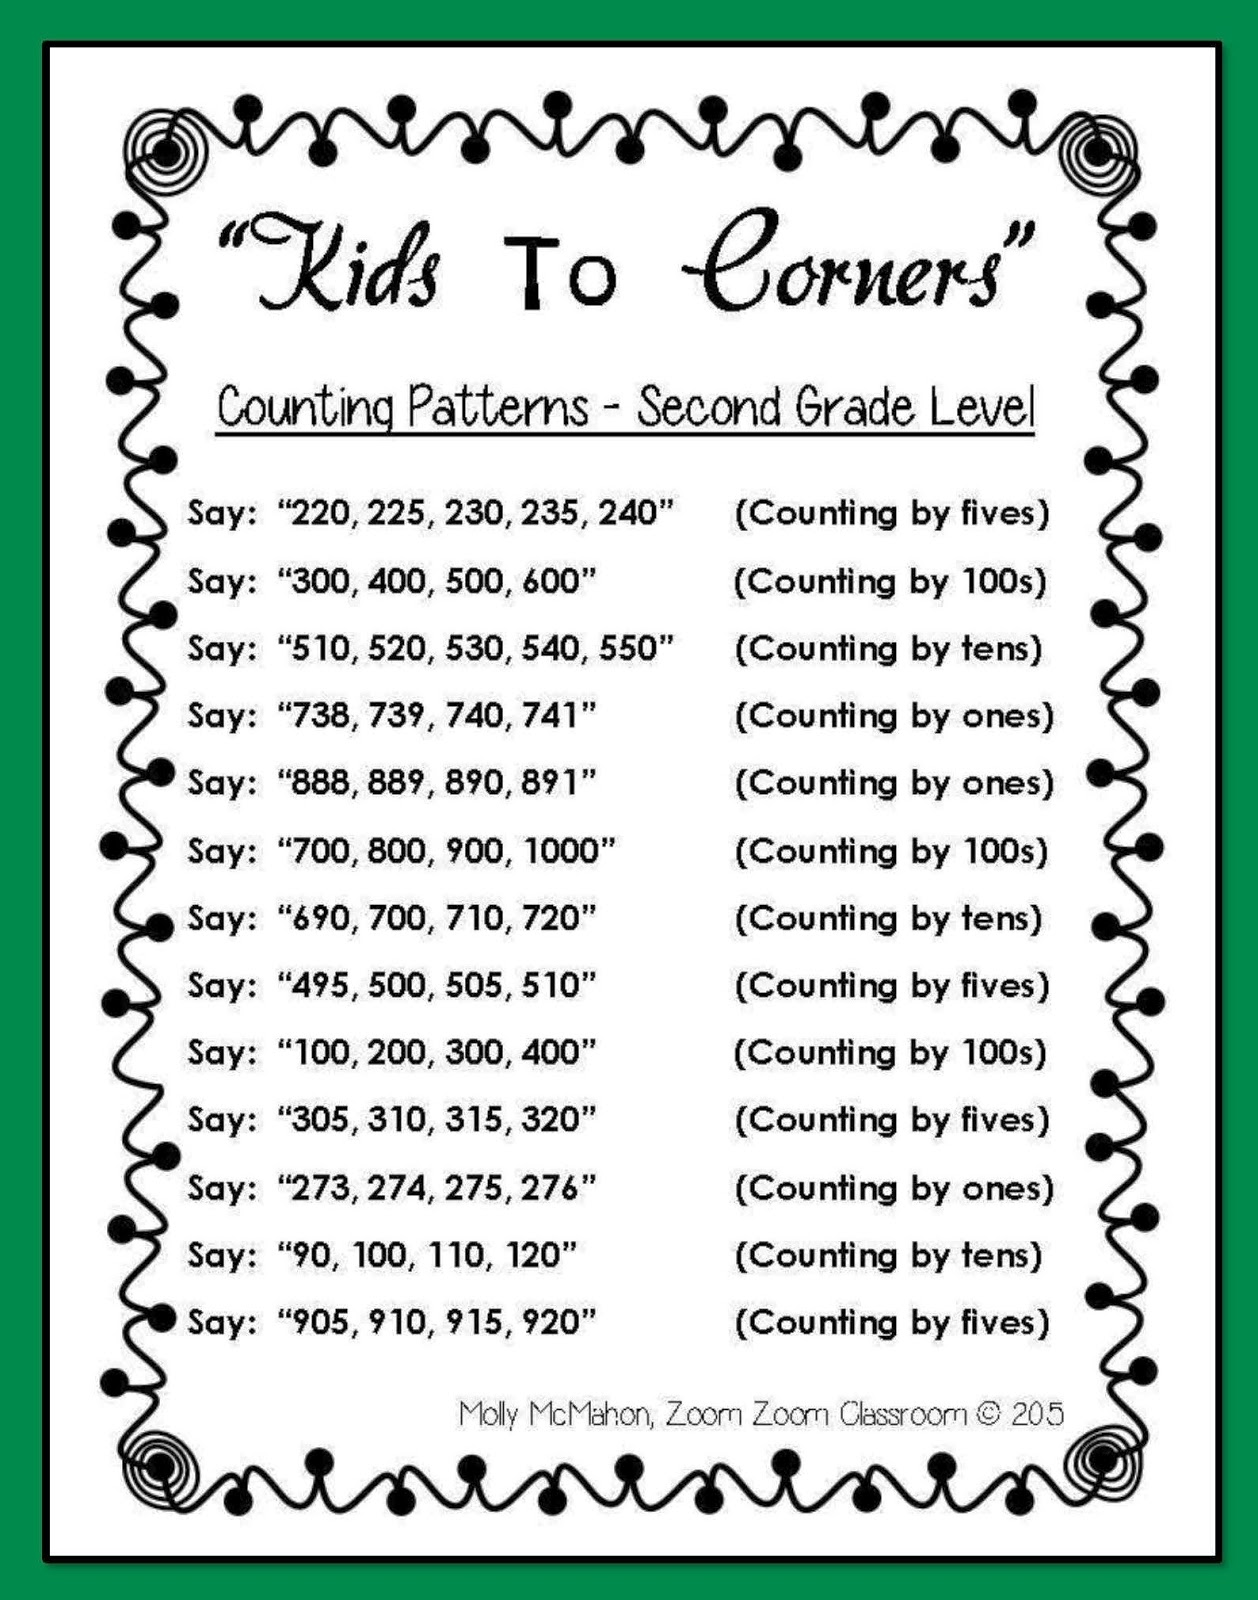 Lessons by Molly: skip-counting-patterns